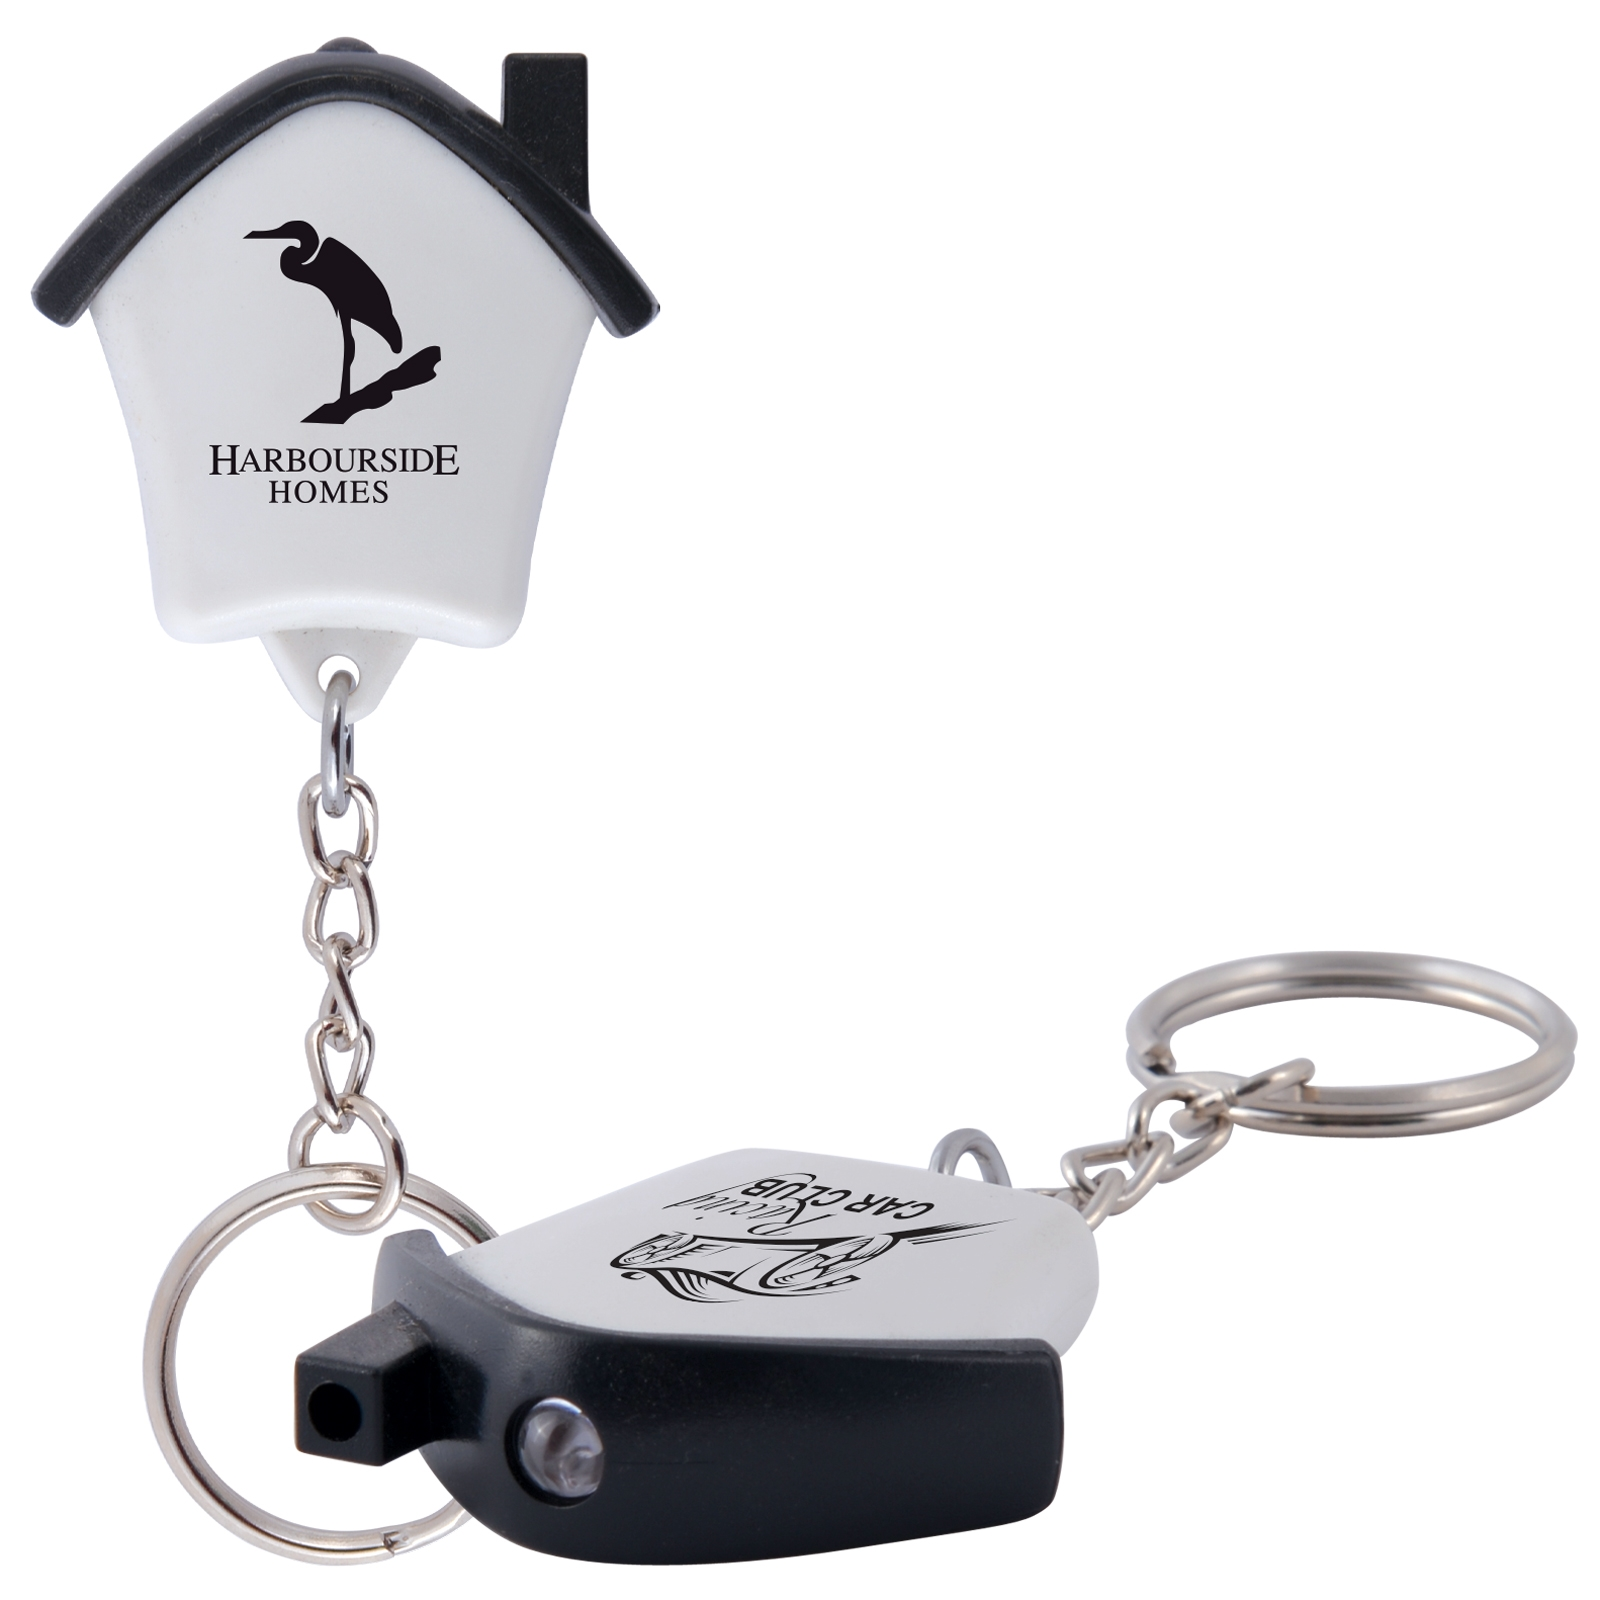 Mini House Flashlight Keytag - Includes a 1 colour printed logo